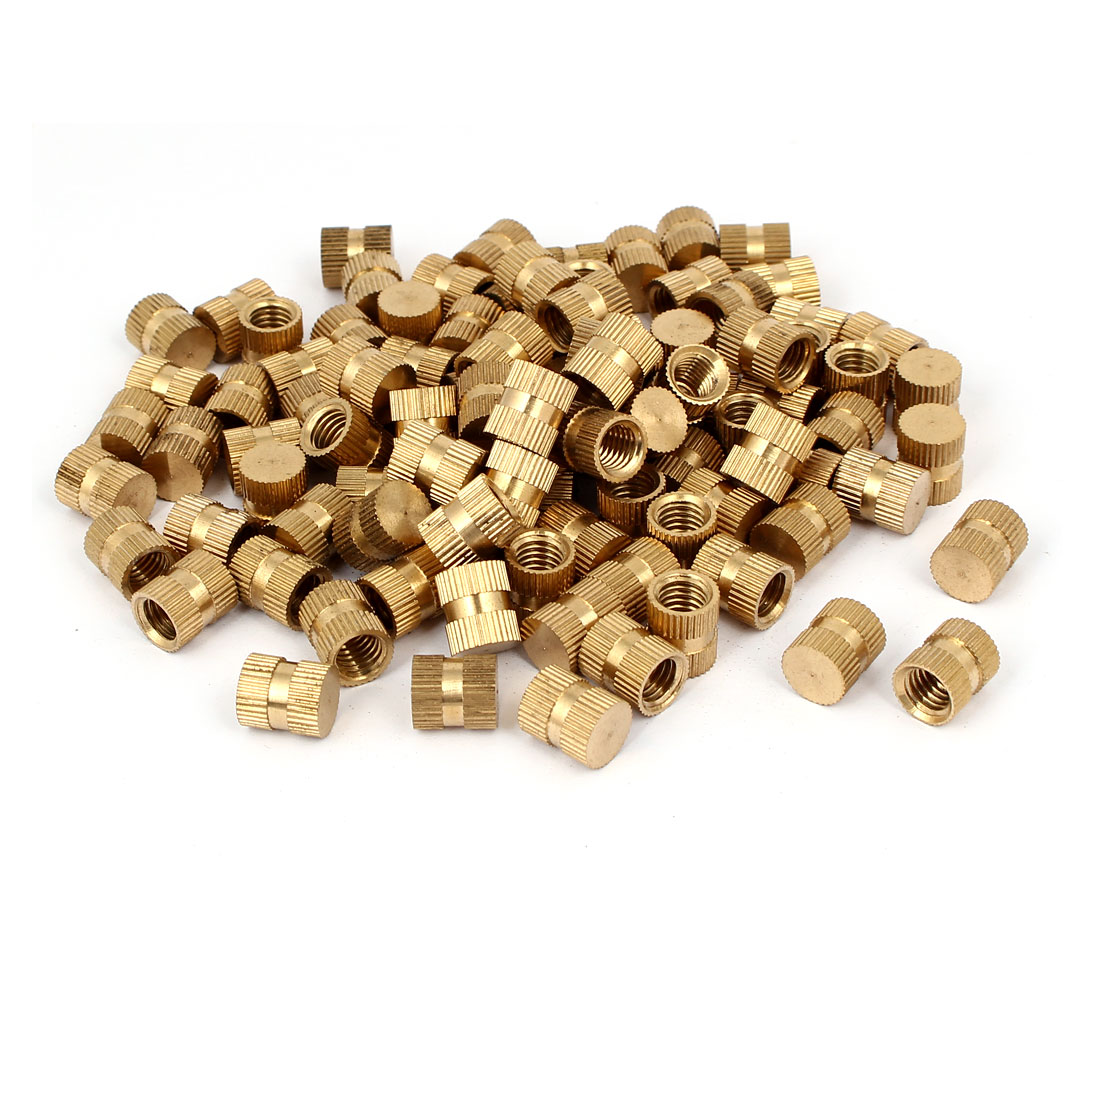 M8 x 12mm 10mm OD Brass Threaded Insert Embedded Knurled Thumb Nut 100PCS